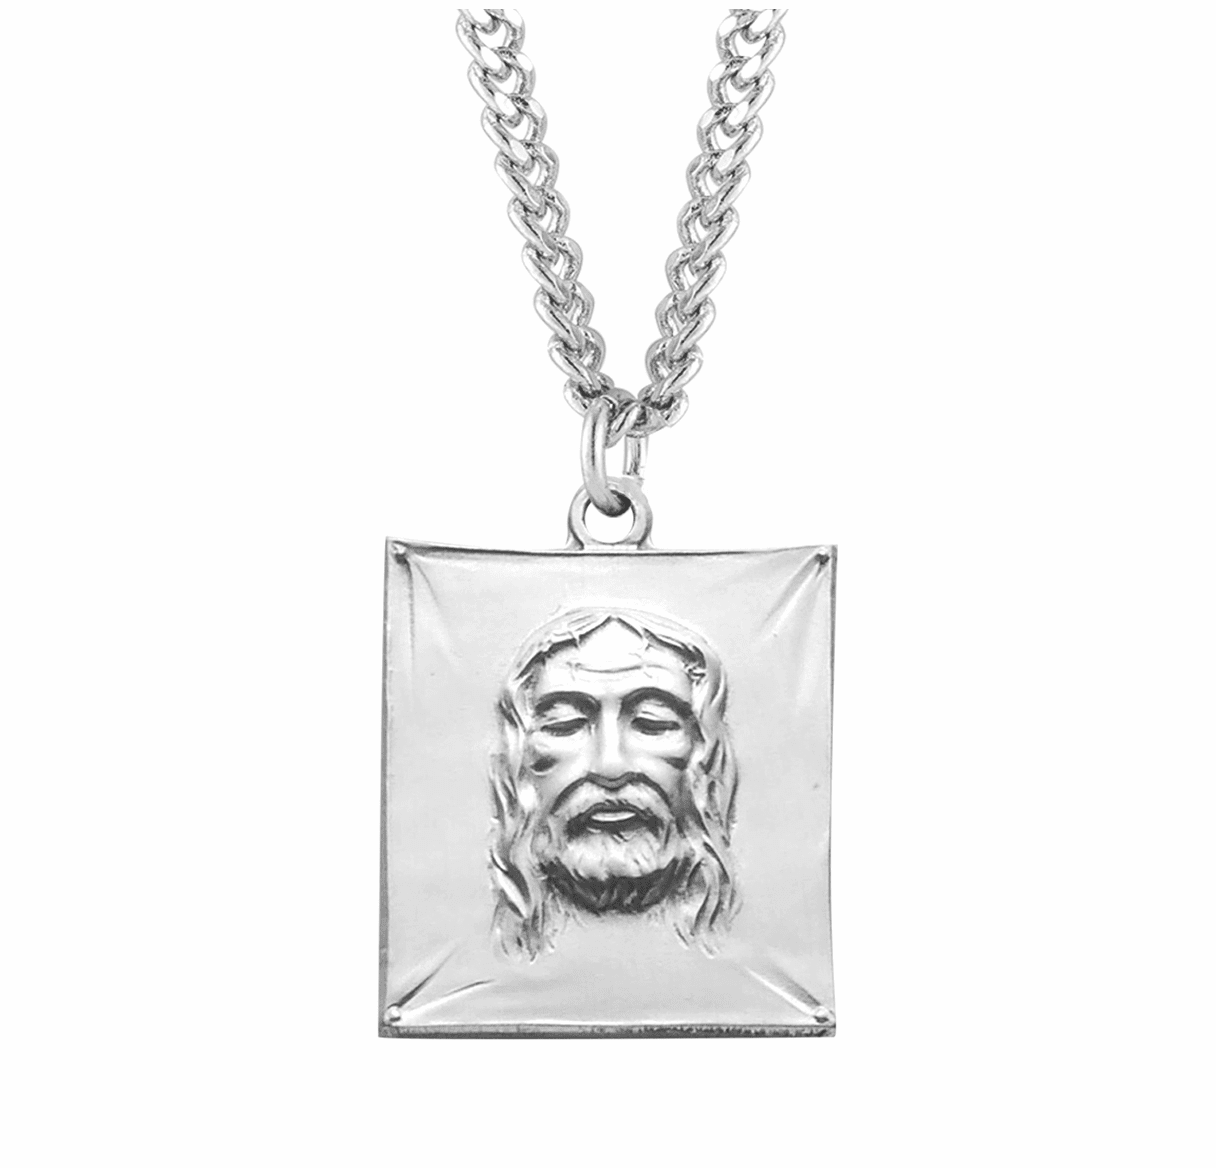 Sterling Silver Shroud Medal Necklace by HMH Religious